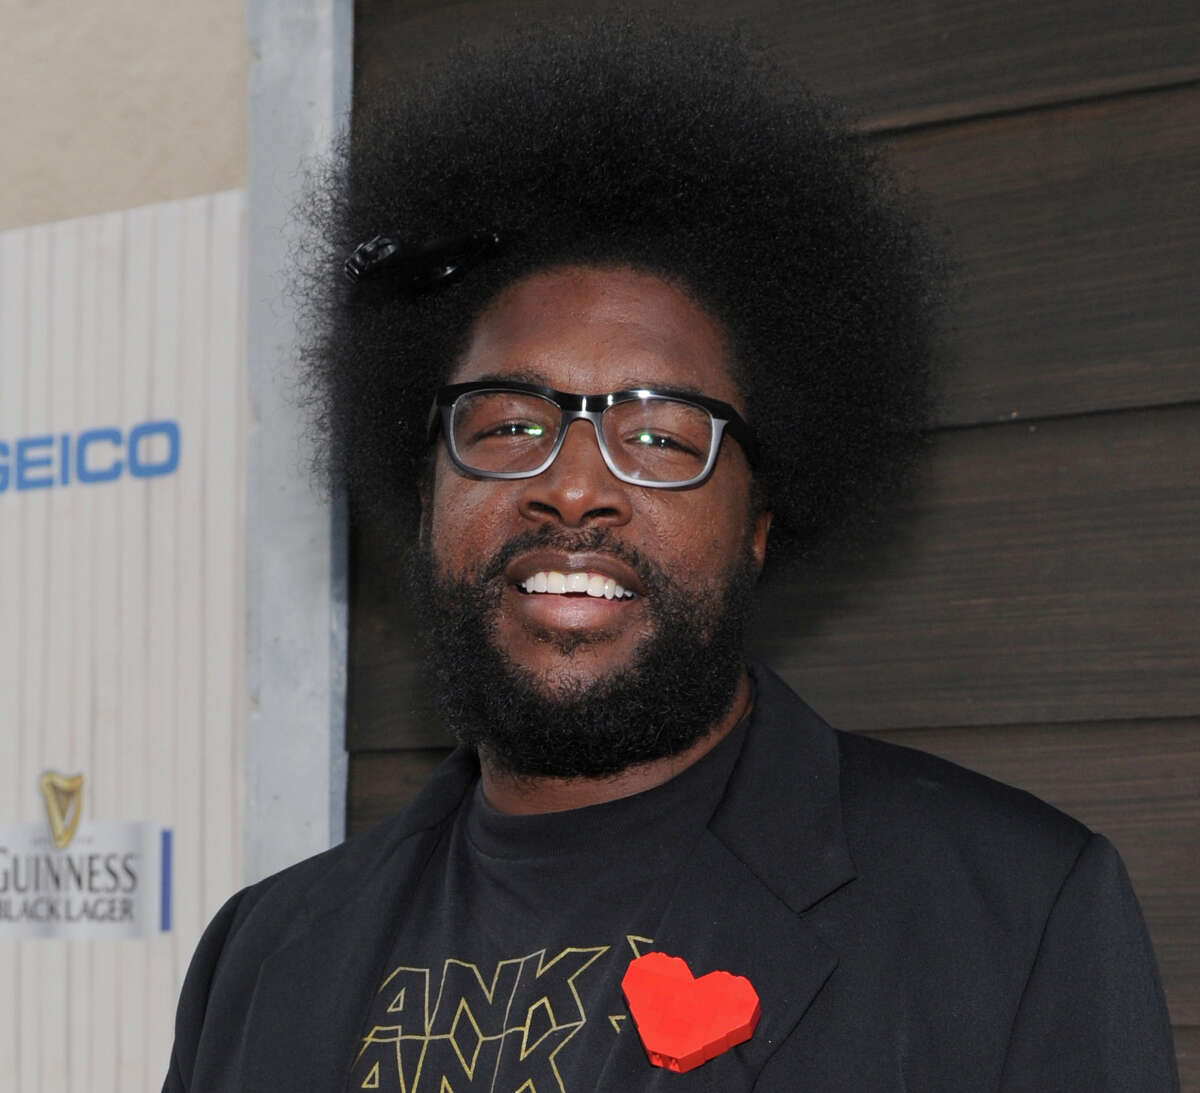 """FILE - In this June 8, 2013 file photo, Questlove arrives at Spike TV's Guys Choice Awards at Sony Pictures Studios in Culver City, Calif. The Roots leader is executive producing a music series for VH1 that will feature three artists performing simultaneously on one stage. """"SoundClash"""" debuts July 23, 2014, with Lil Wayne, Fall Out Boy and buzzed British group London Grammar. (Photo by Frank Micelotta/Invision/AP, File) ORG XMIT: CAET509"""